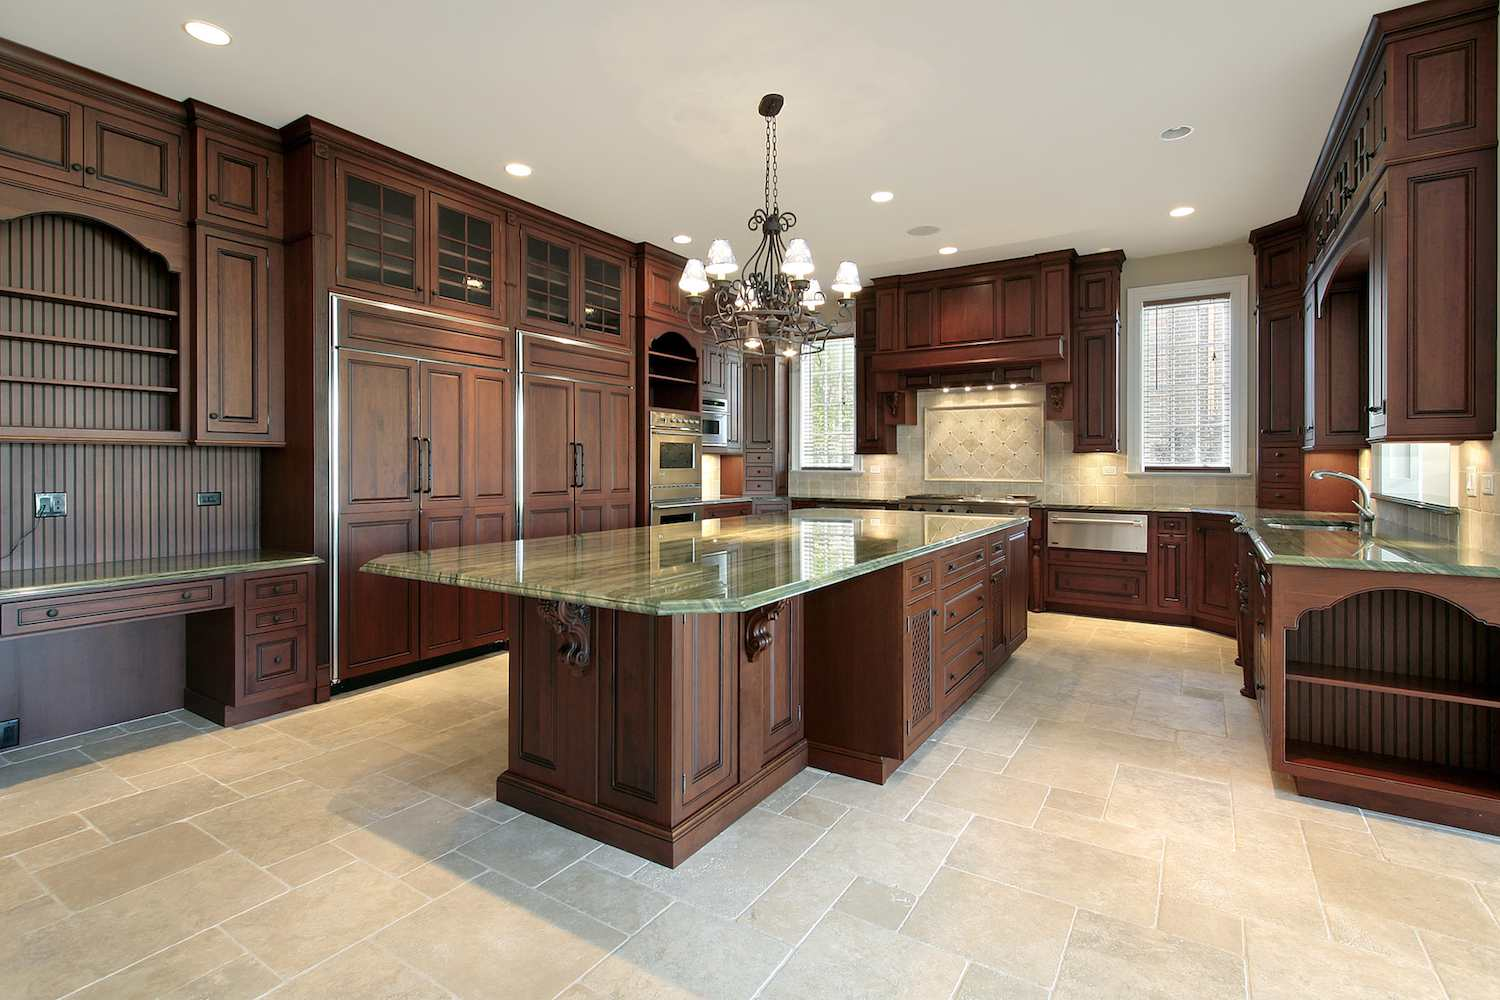 granite these themocracy countertops your over days to countertop for the years granit care how